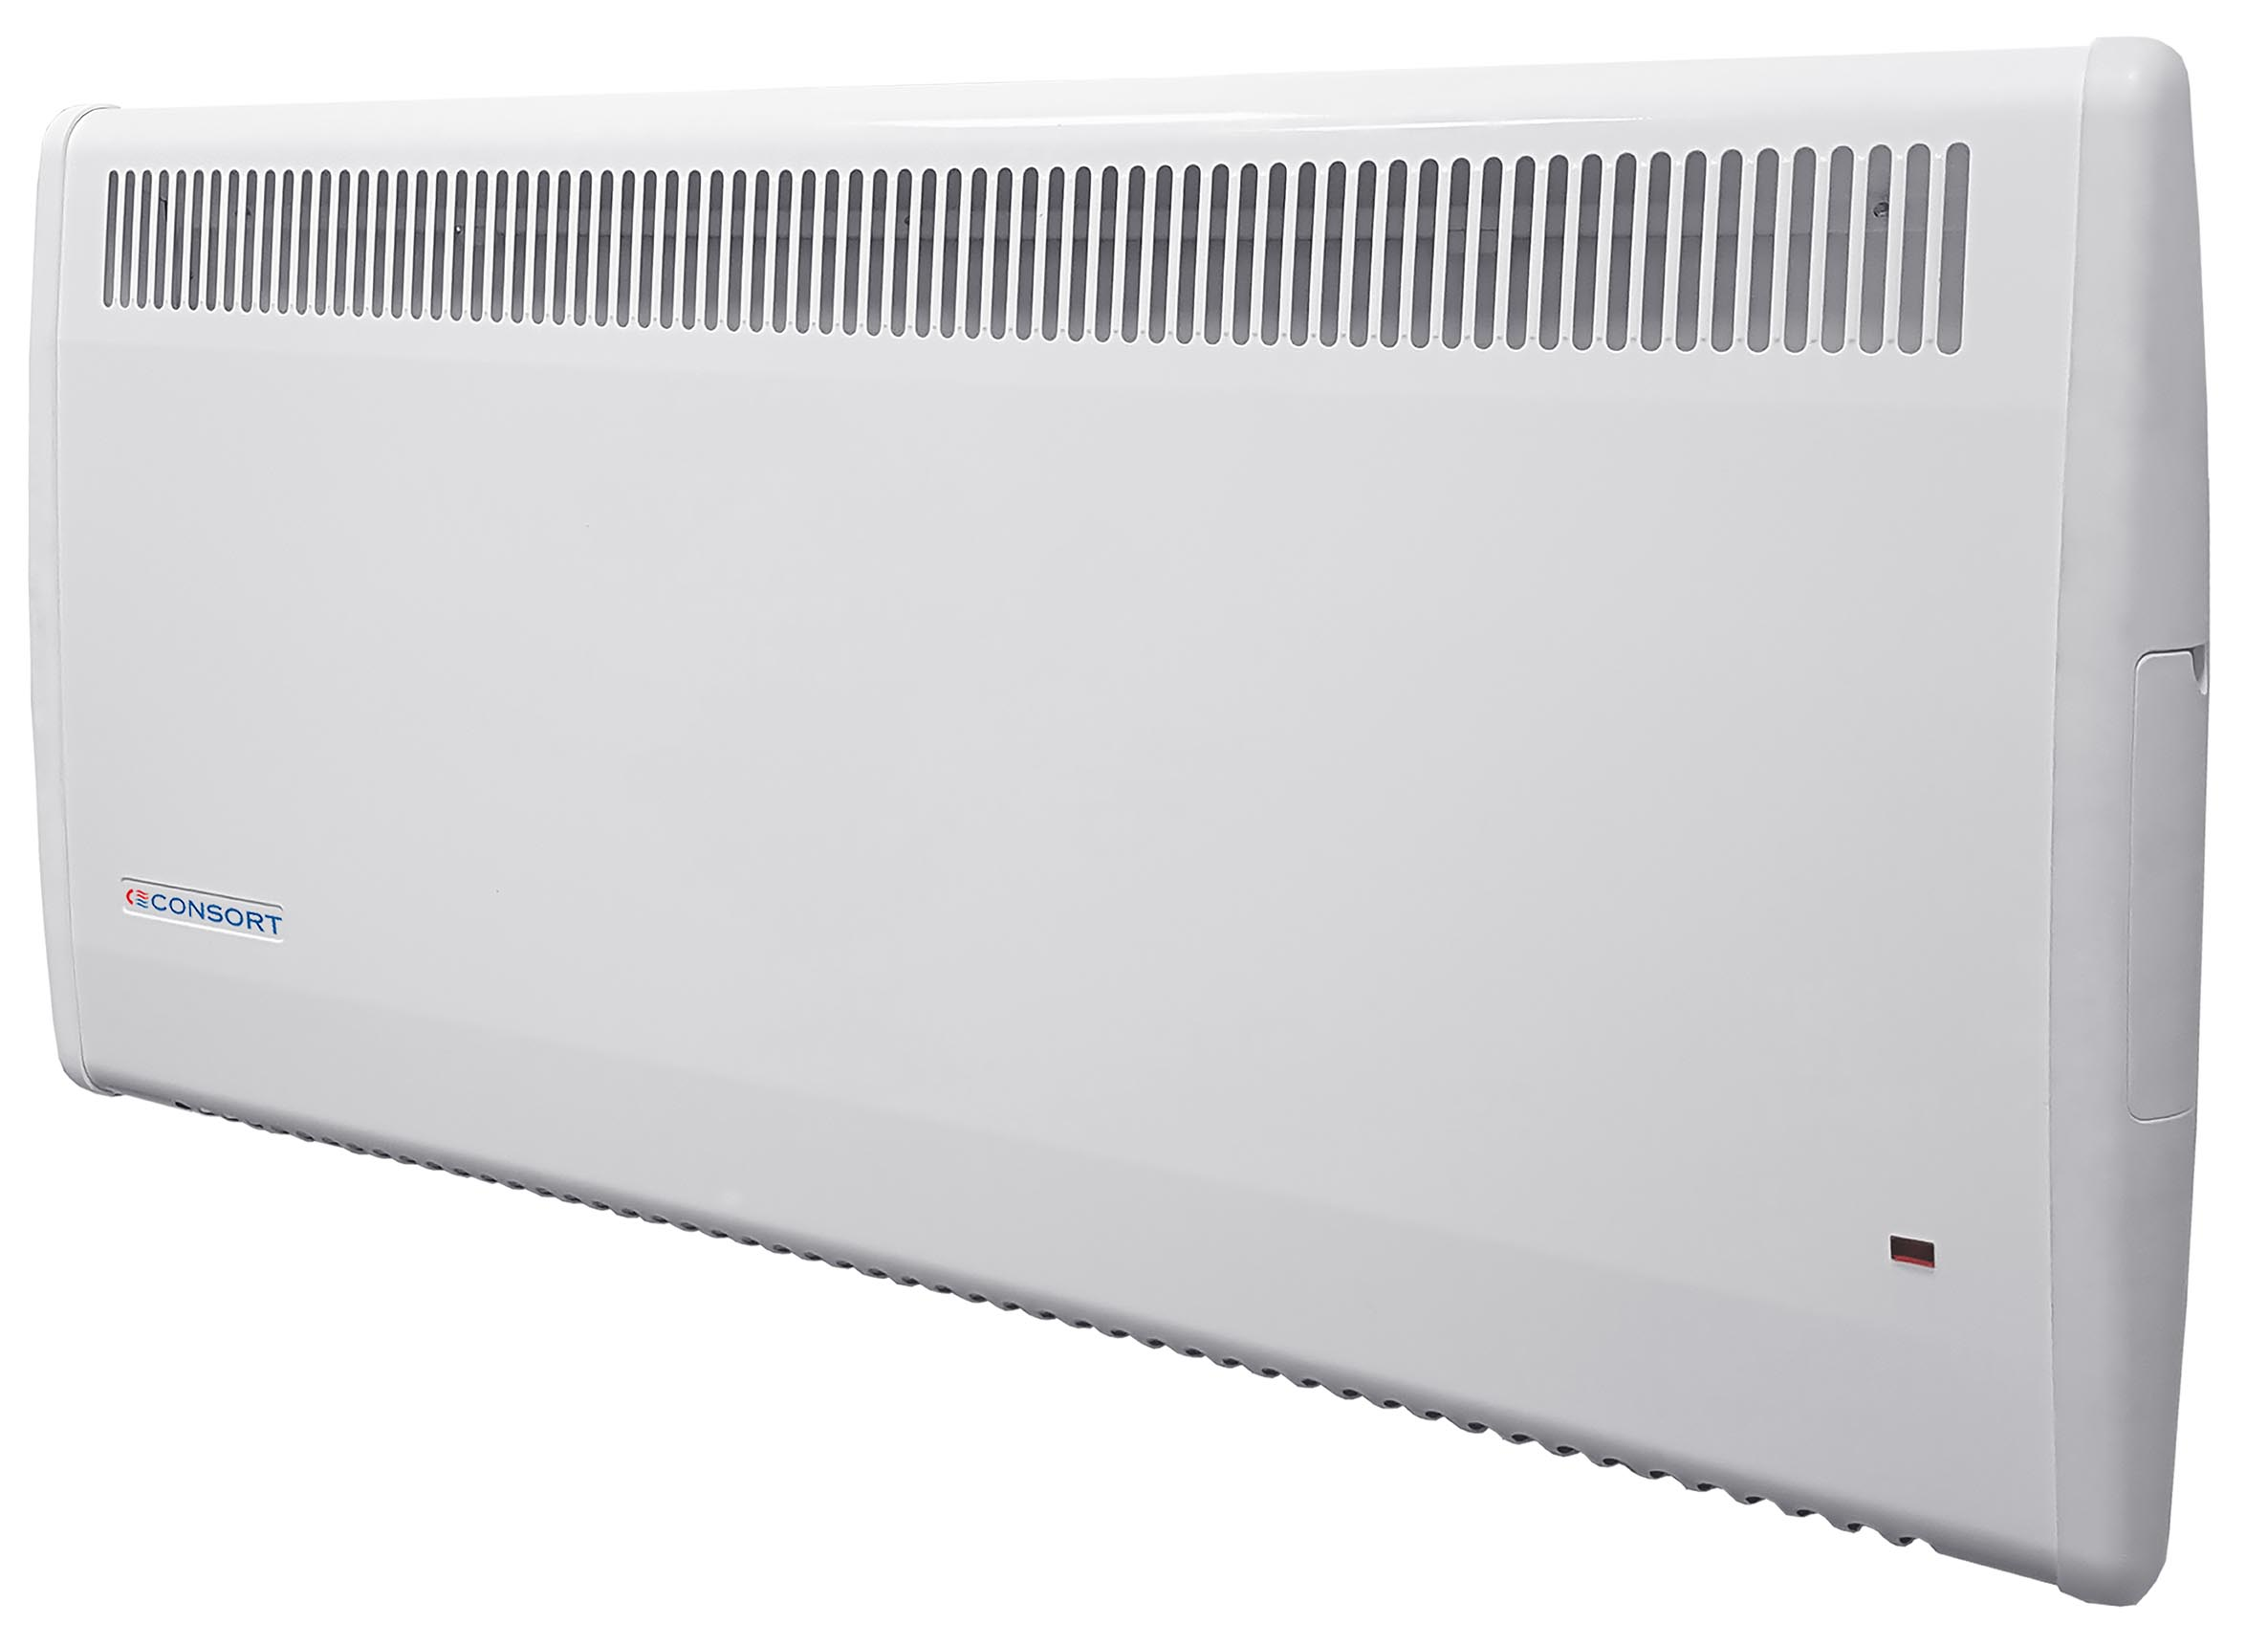 PLE panel heater with electronic 7-day timer